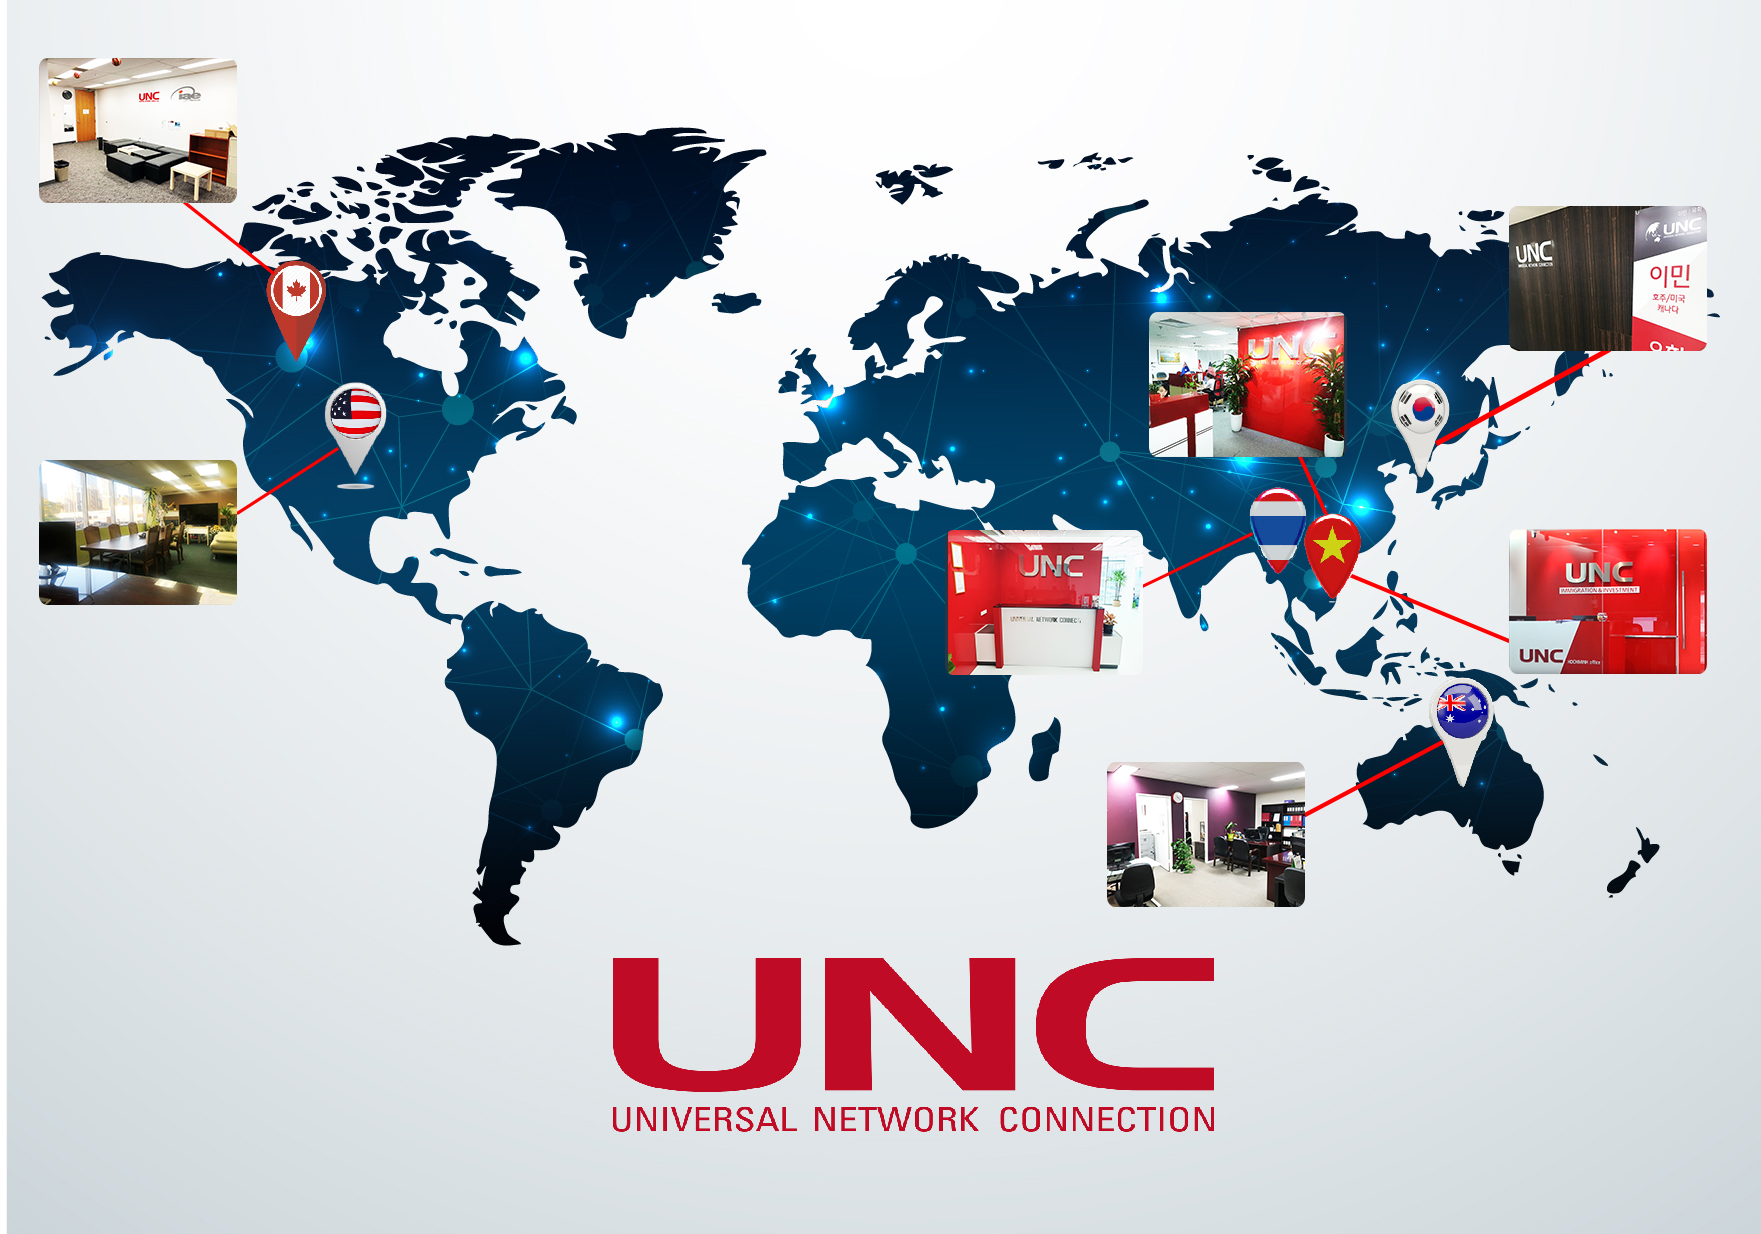 Công Ty TNHH Universal Network Connection (UNC)